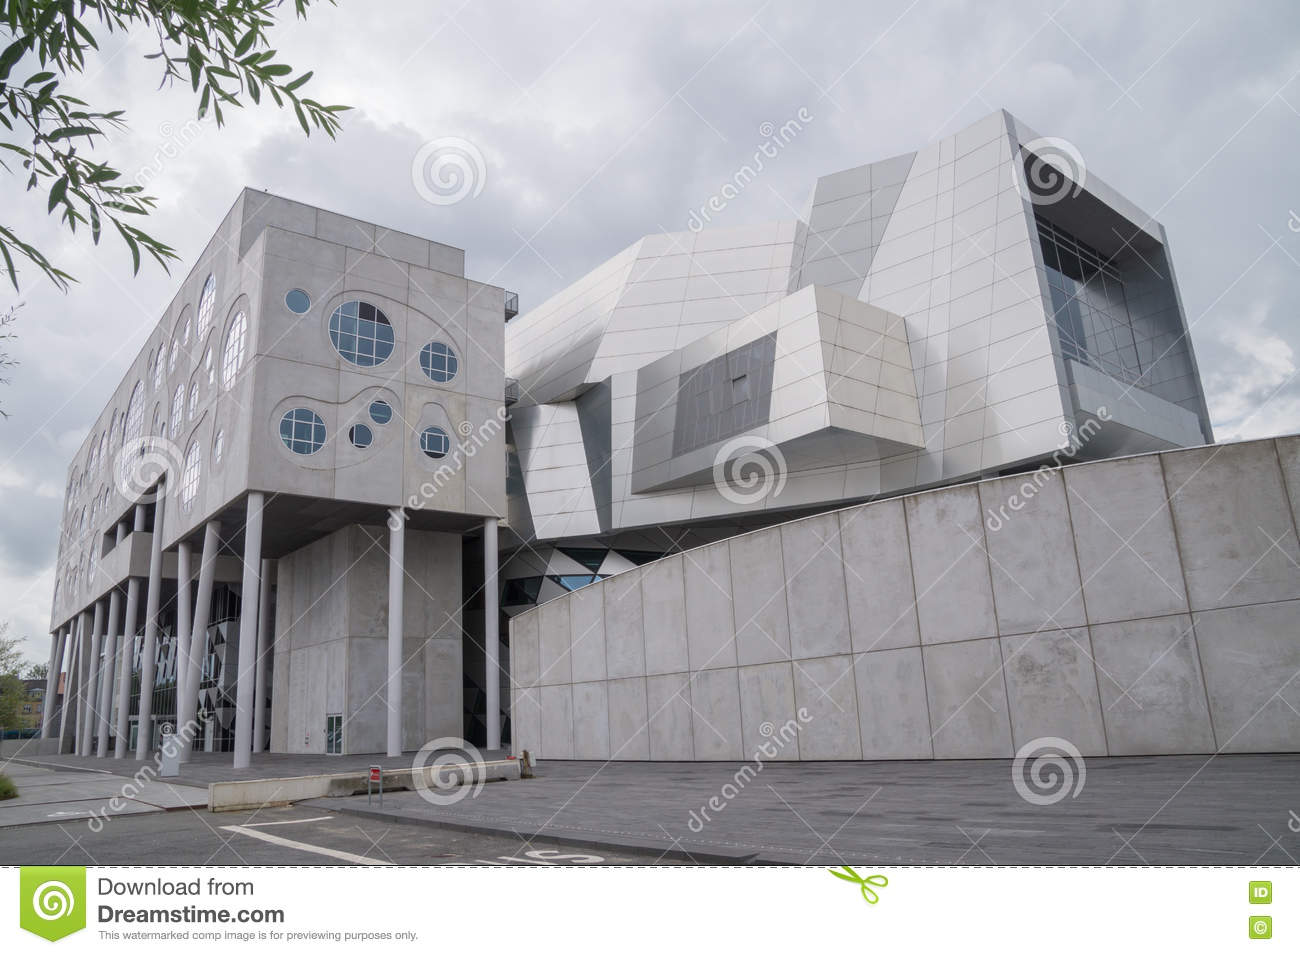 House of music aalborg denmark stock image image of for House music structure